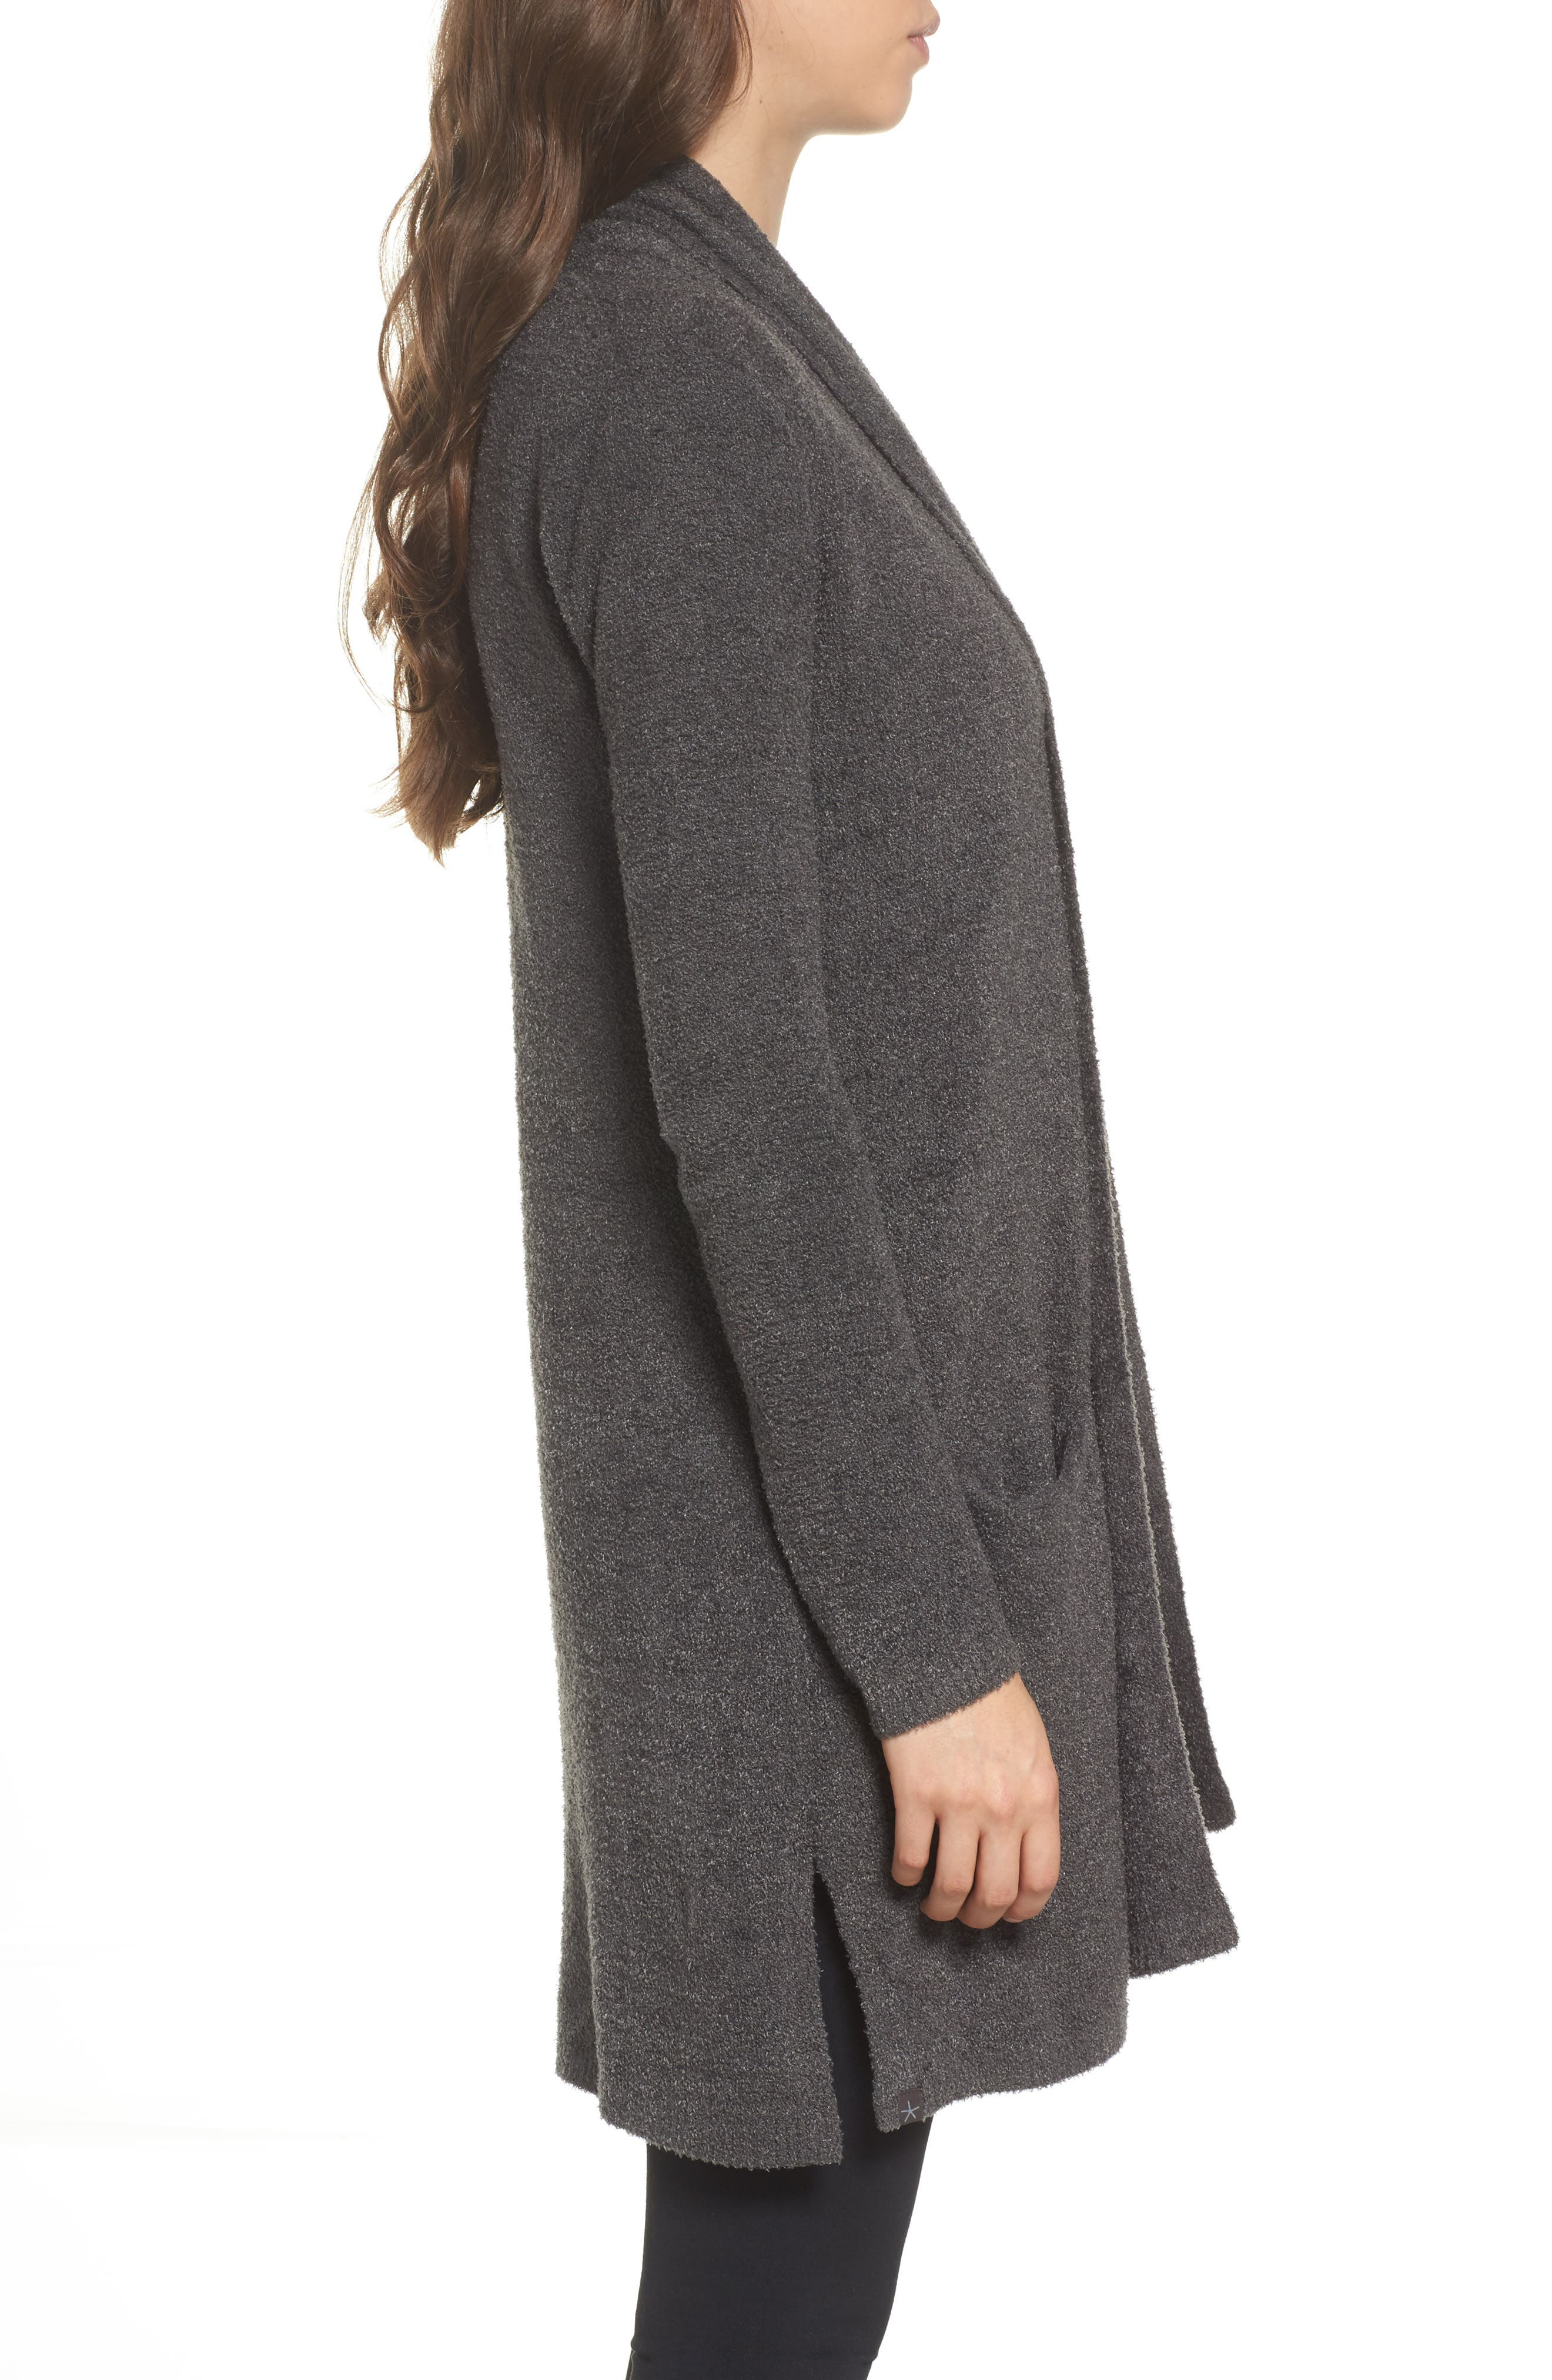 Barefoot Dreams Essential Cardigan,                             Alternate thumbnail 3, color,                             Carbon